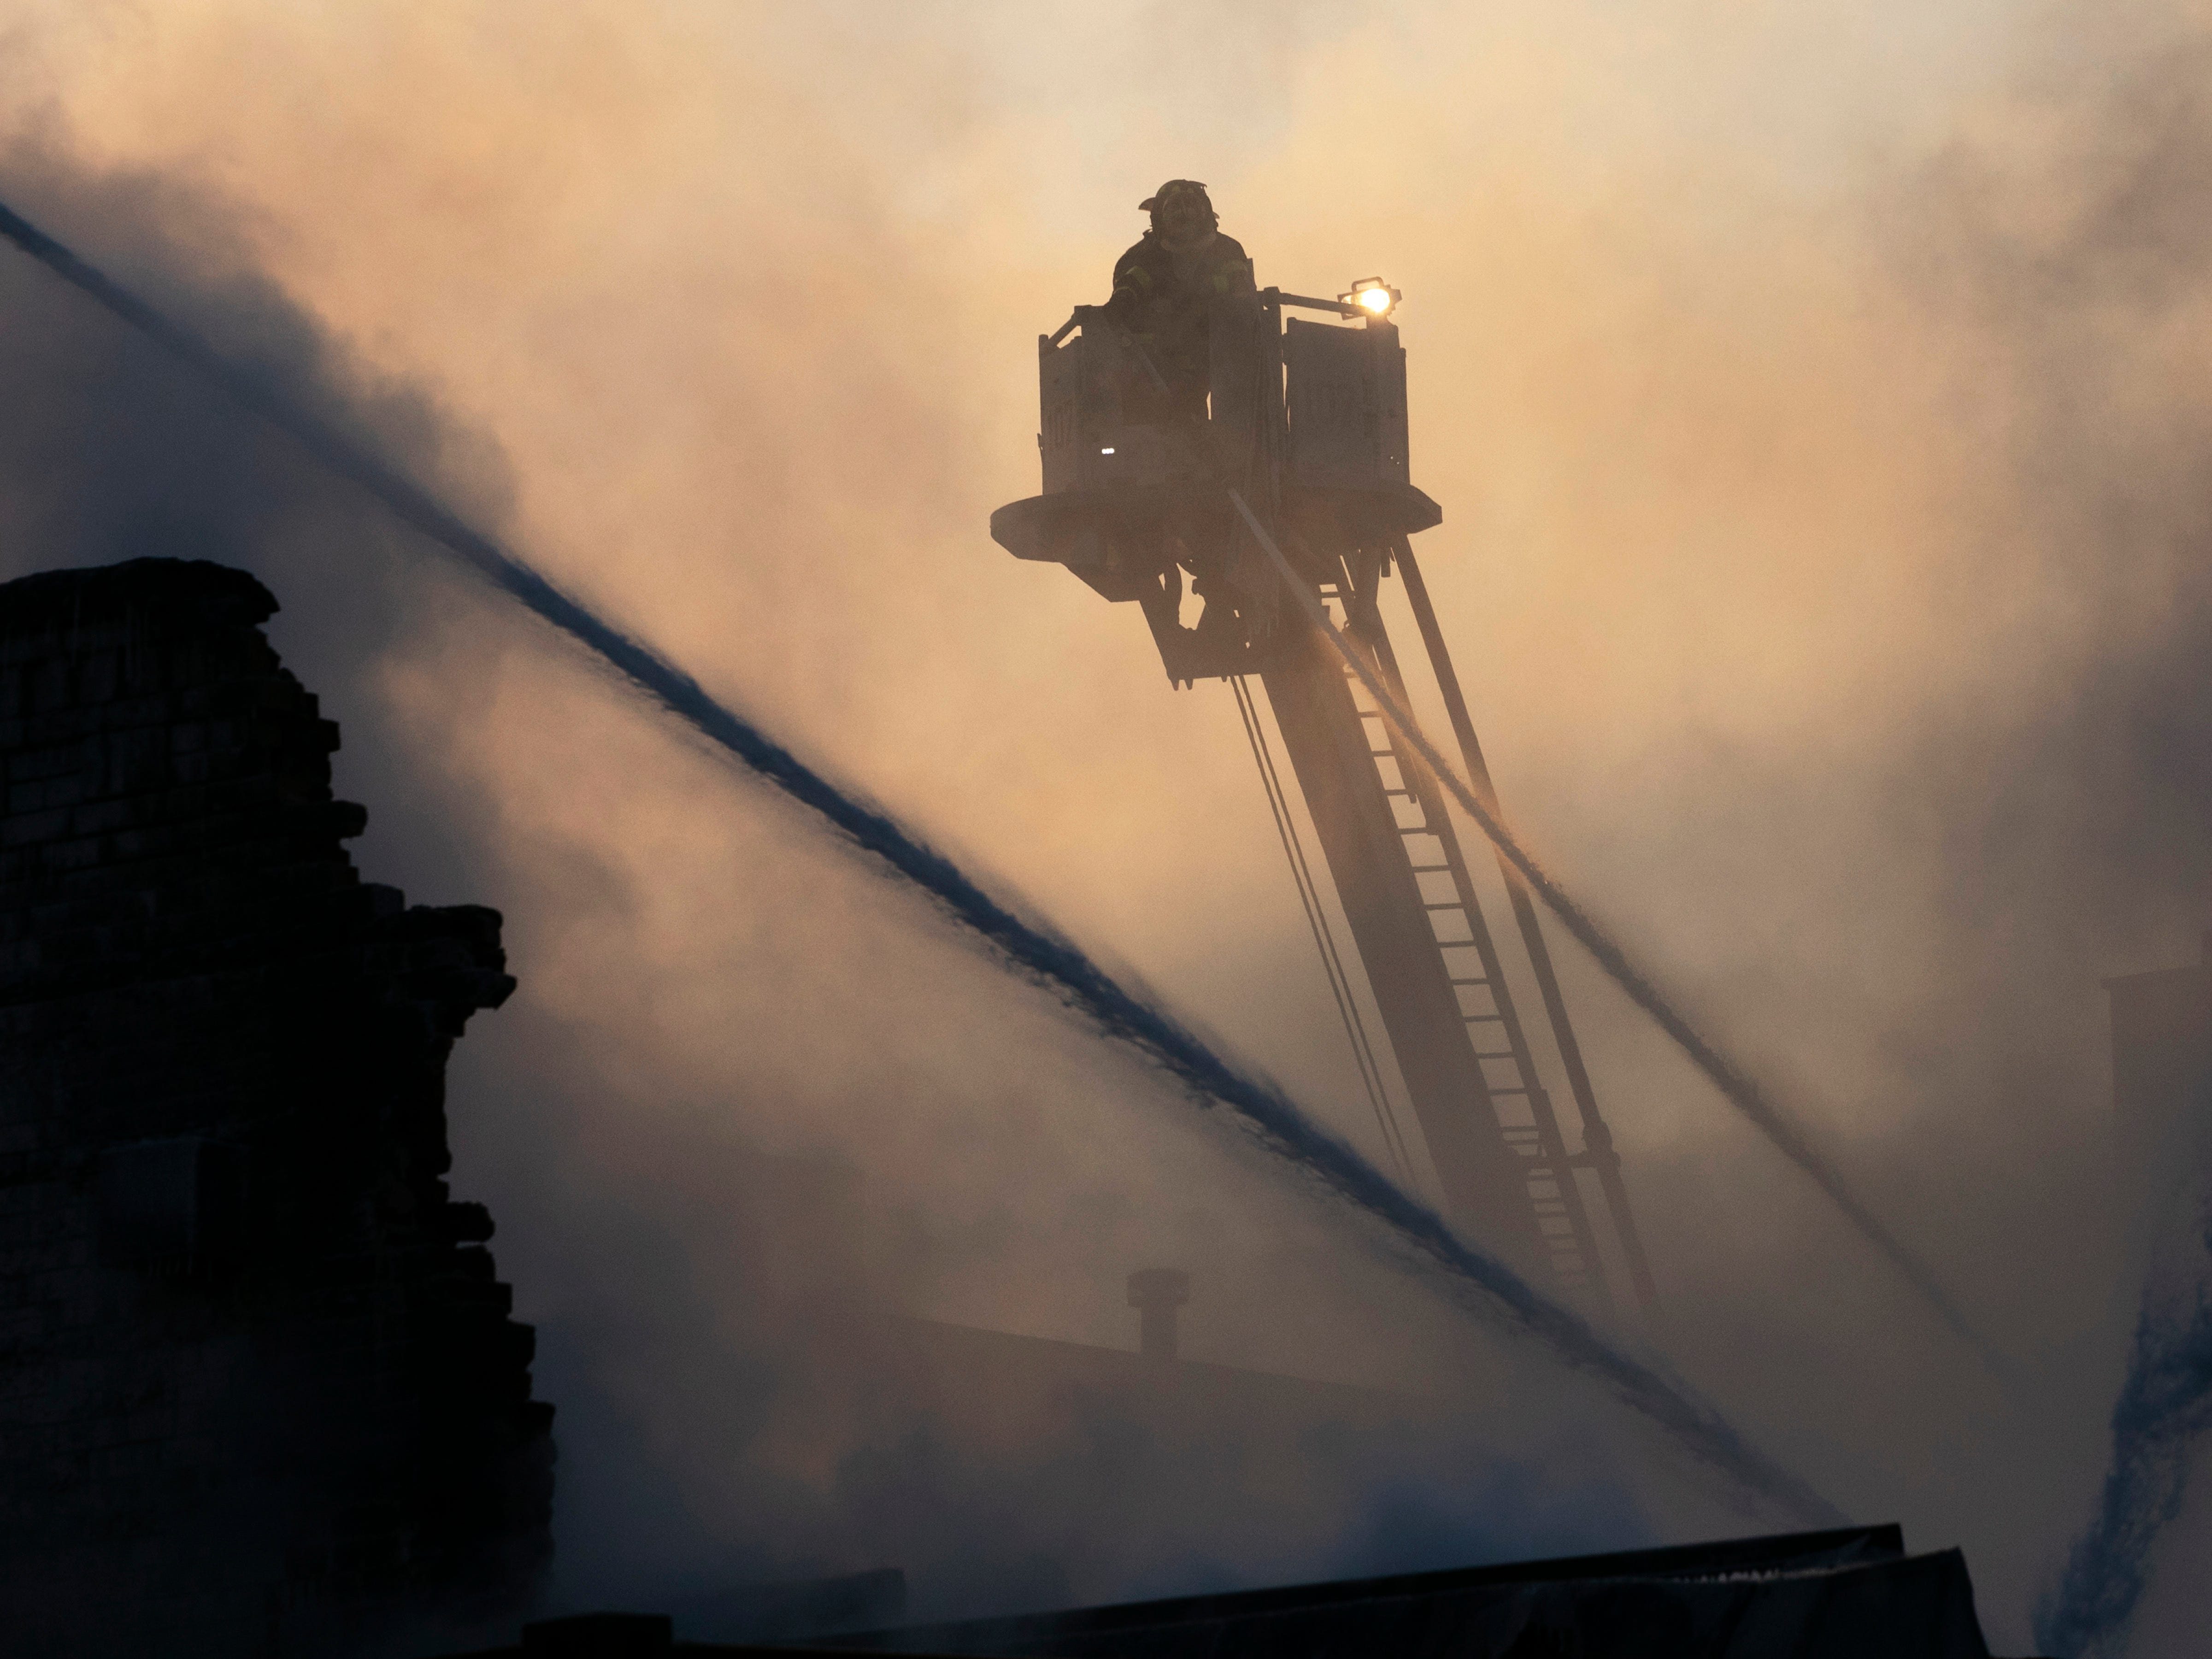 New York firefighters battle a blaze in a commercial building in the Bedford Stuyvesant neighborhood of Brooklyn, Jan. 31, 2019 in New York. Firefighters around New York state have been grappling with brutal cold during big blazes.